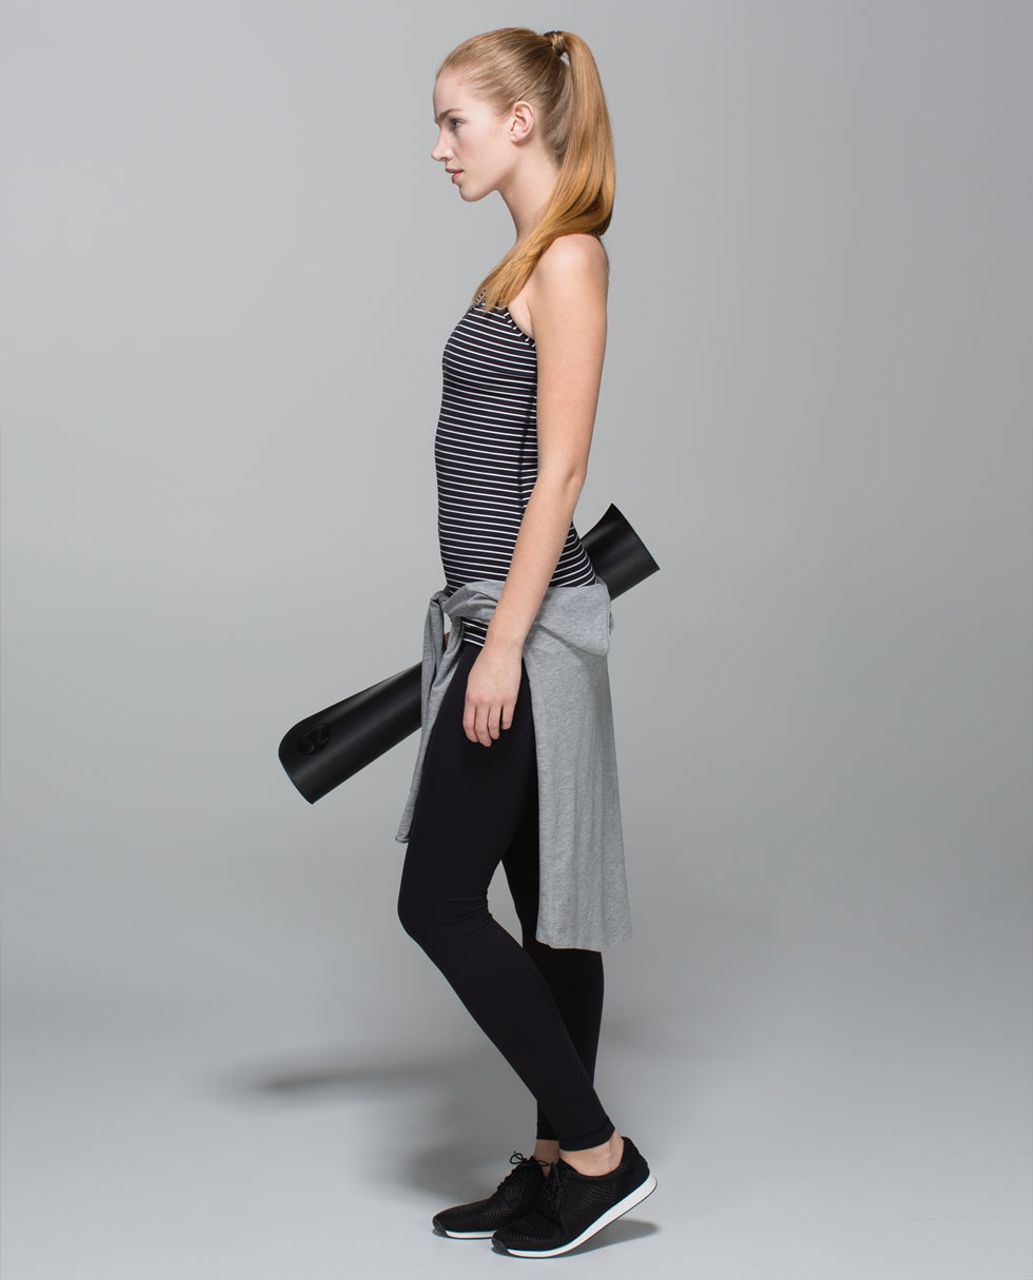 Lululemon Power Y Tank *Luon - Parallel Stripe Black White